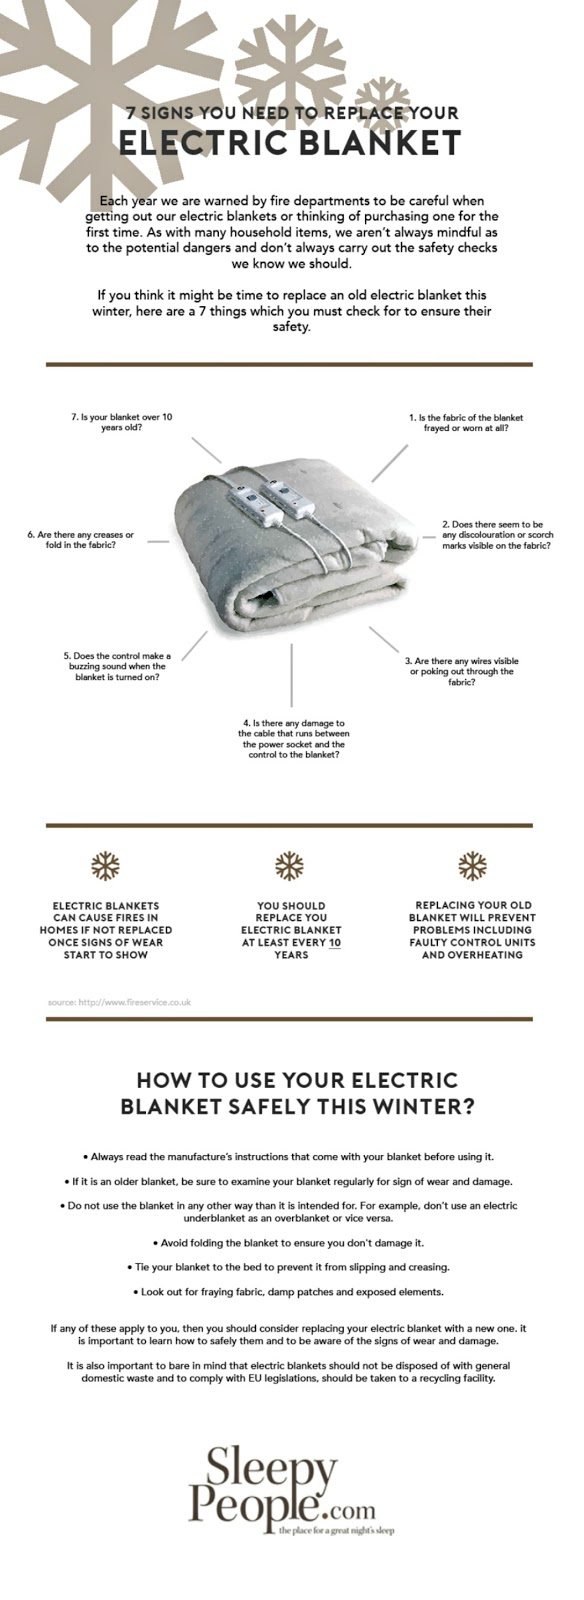 electric blanket safety - infographic from Sleepypeople